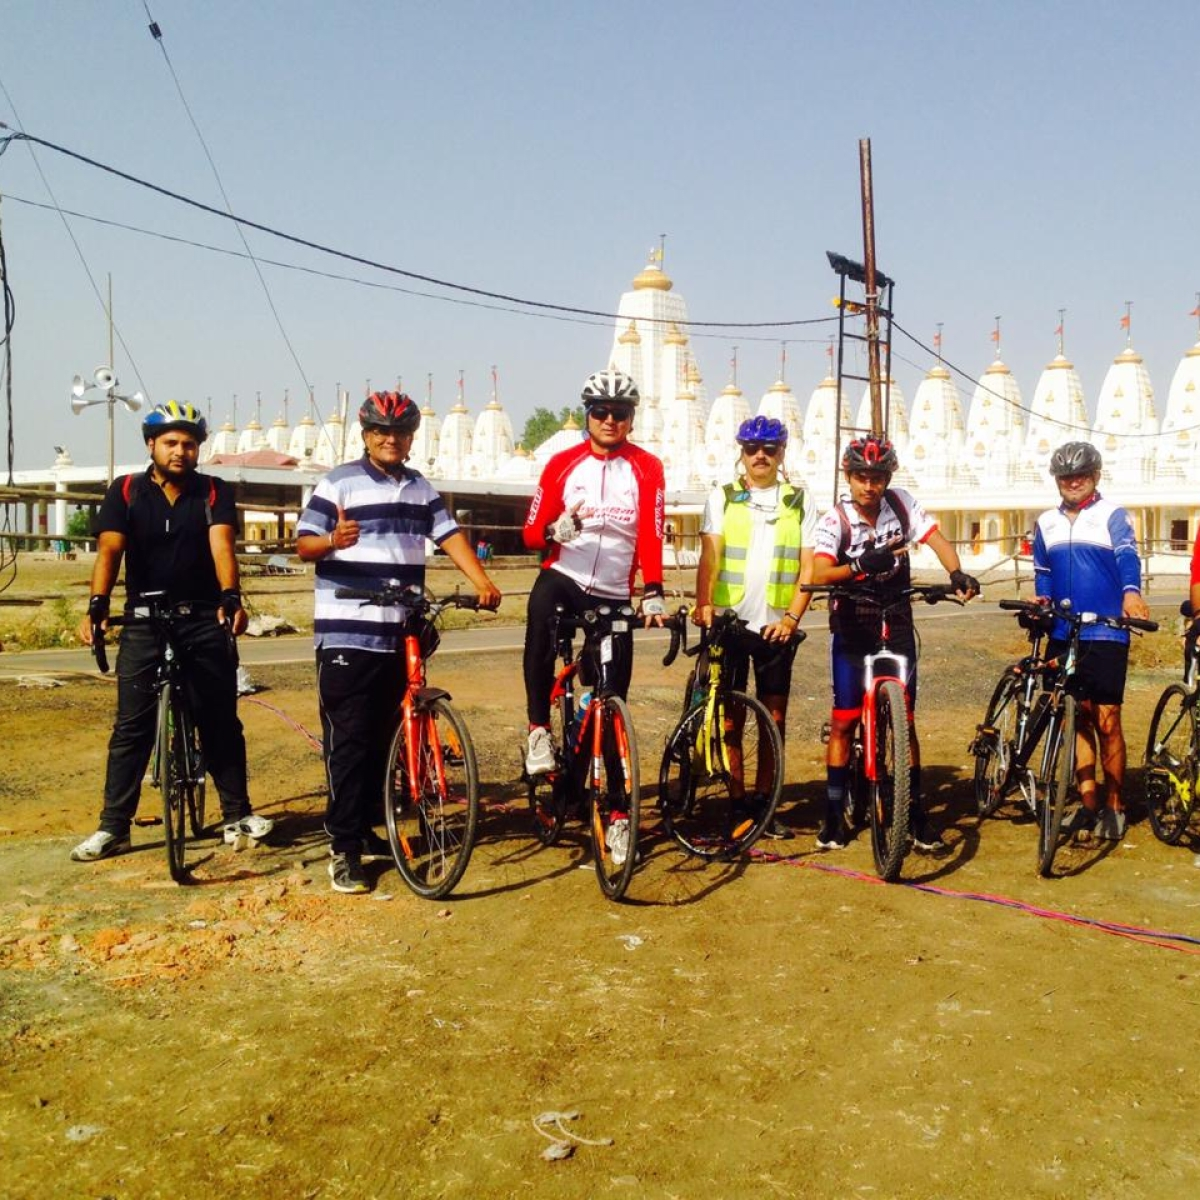 Indore: 40% growth in cycle industry, cycling enthusiasts doubled after lockdown